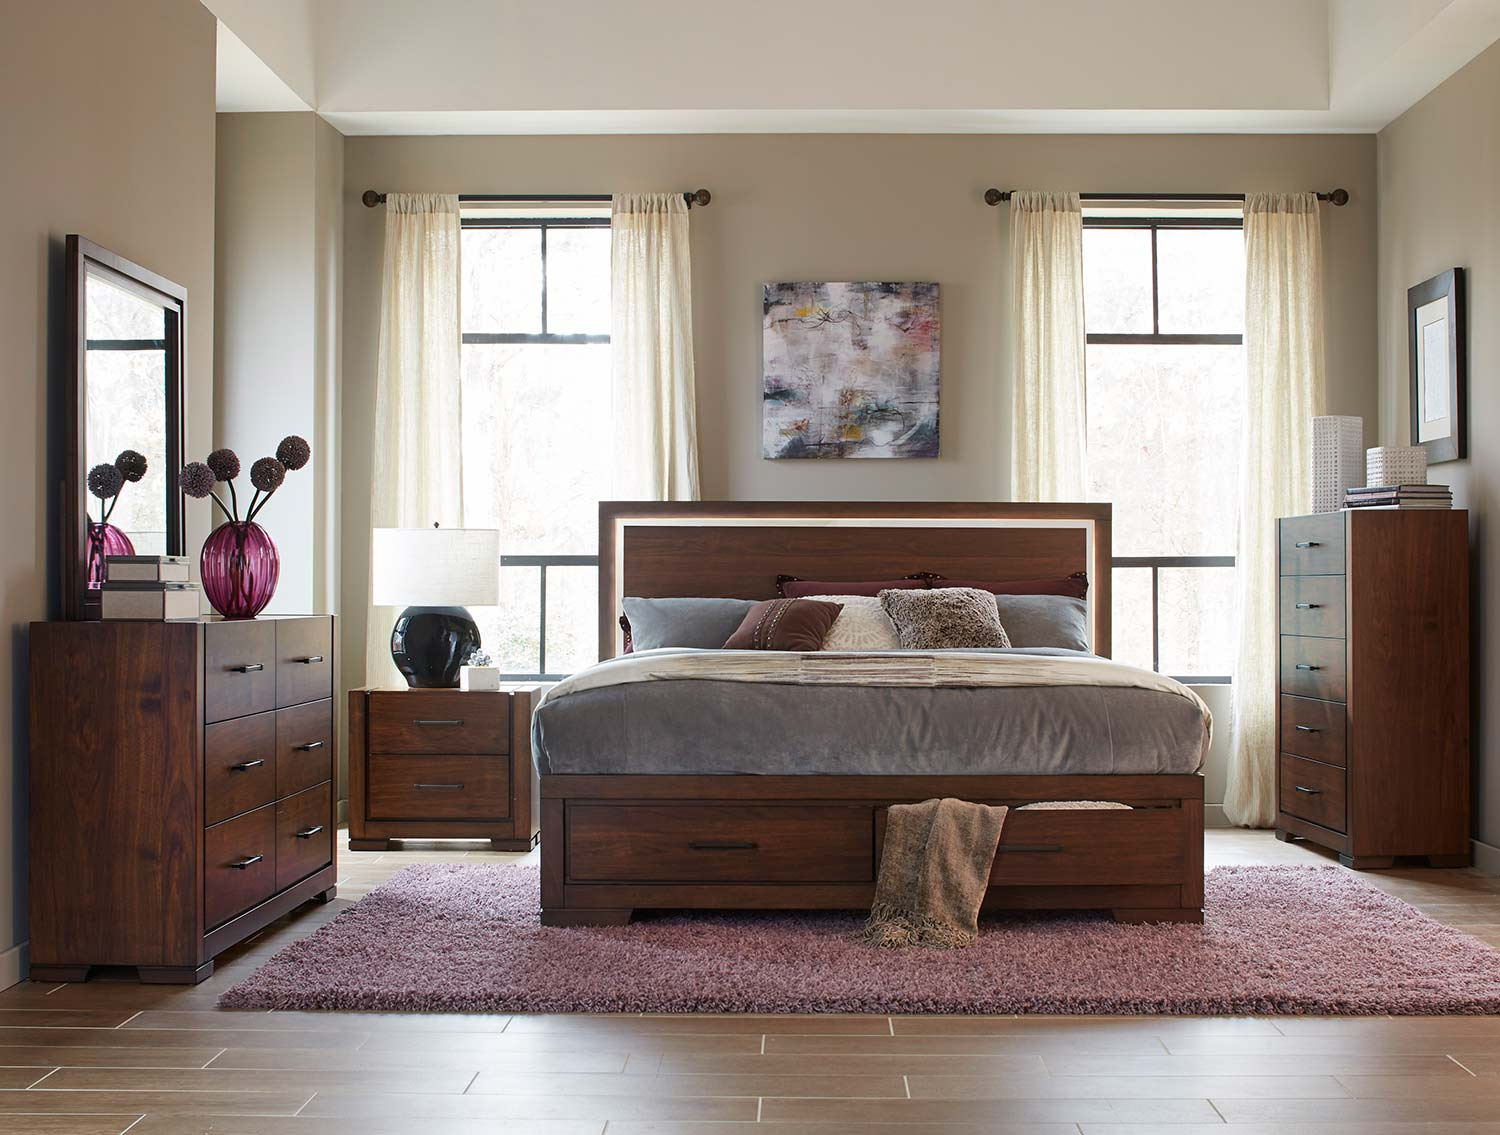 Homelegance Ingrando Platform Bedroom Set - Walnut - LED